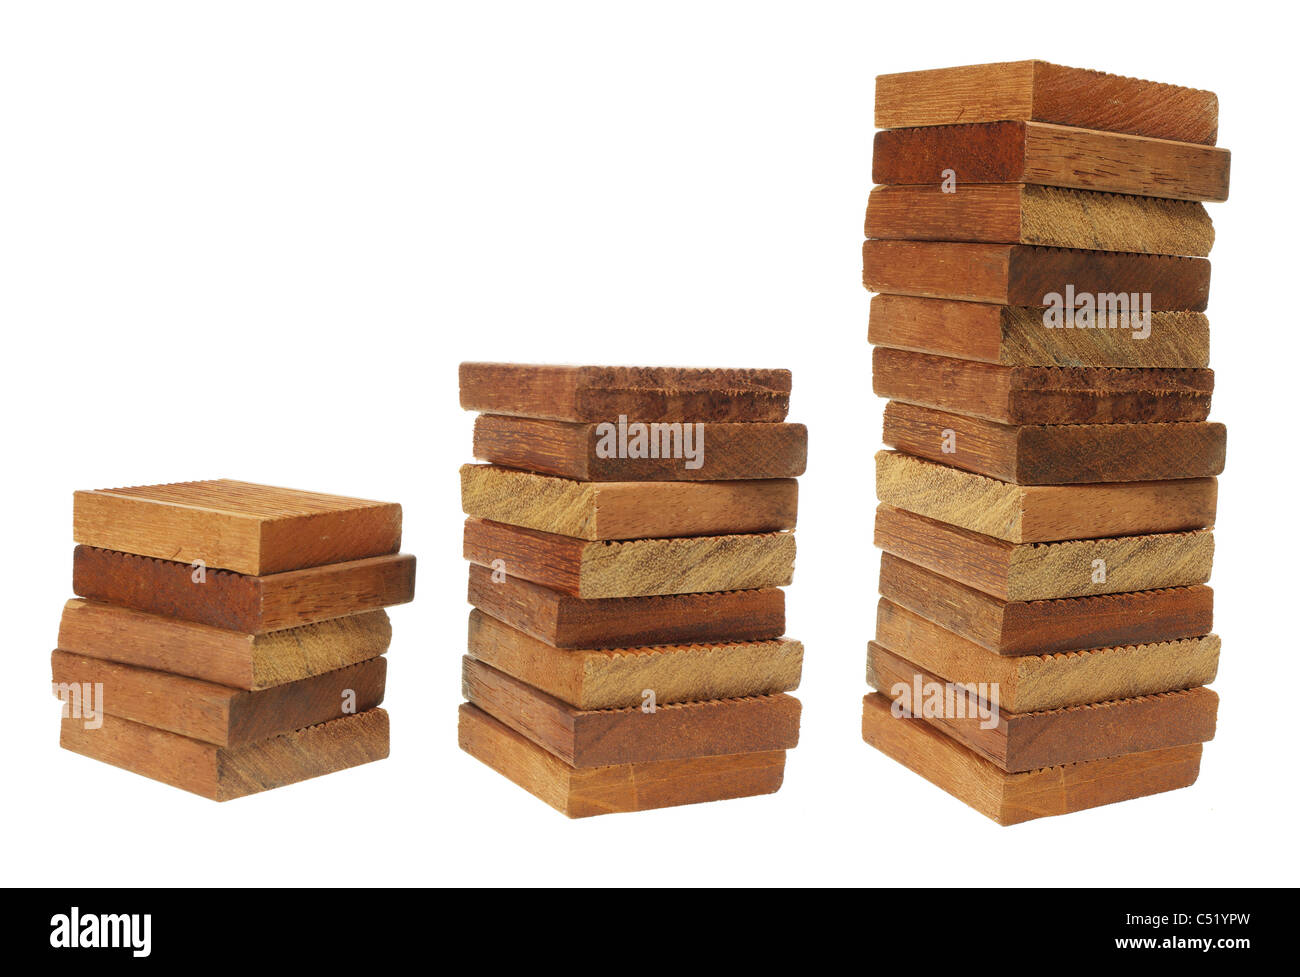 Stacks of Wooden Blocks - Stock Image